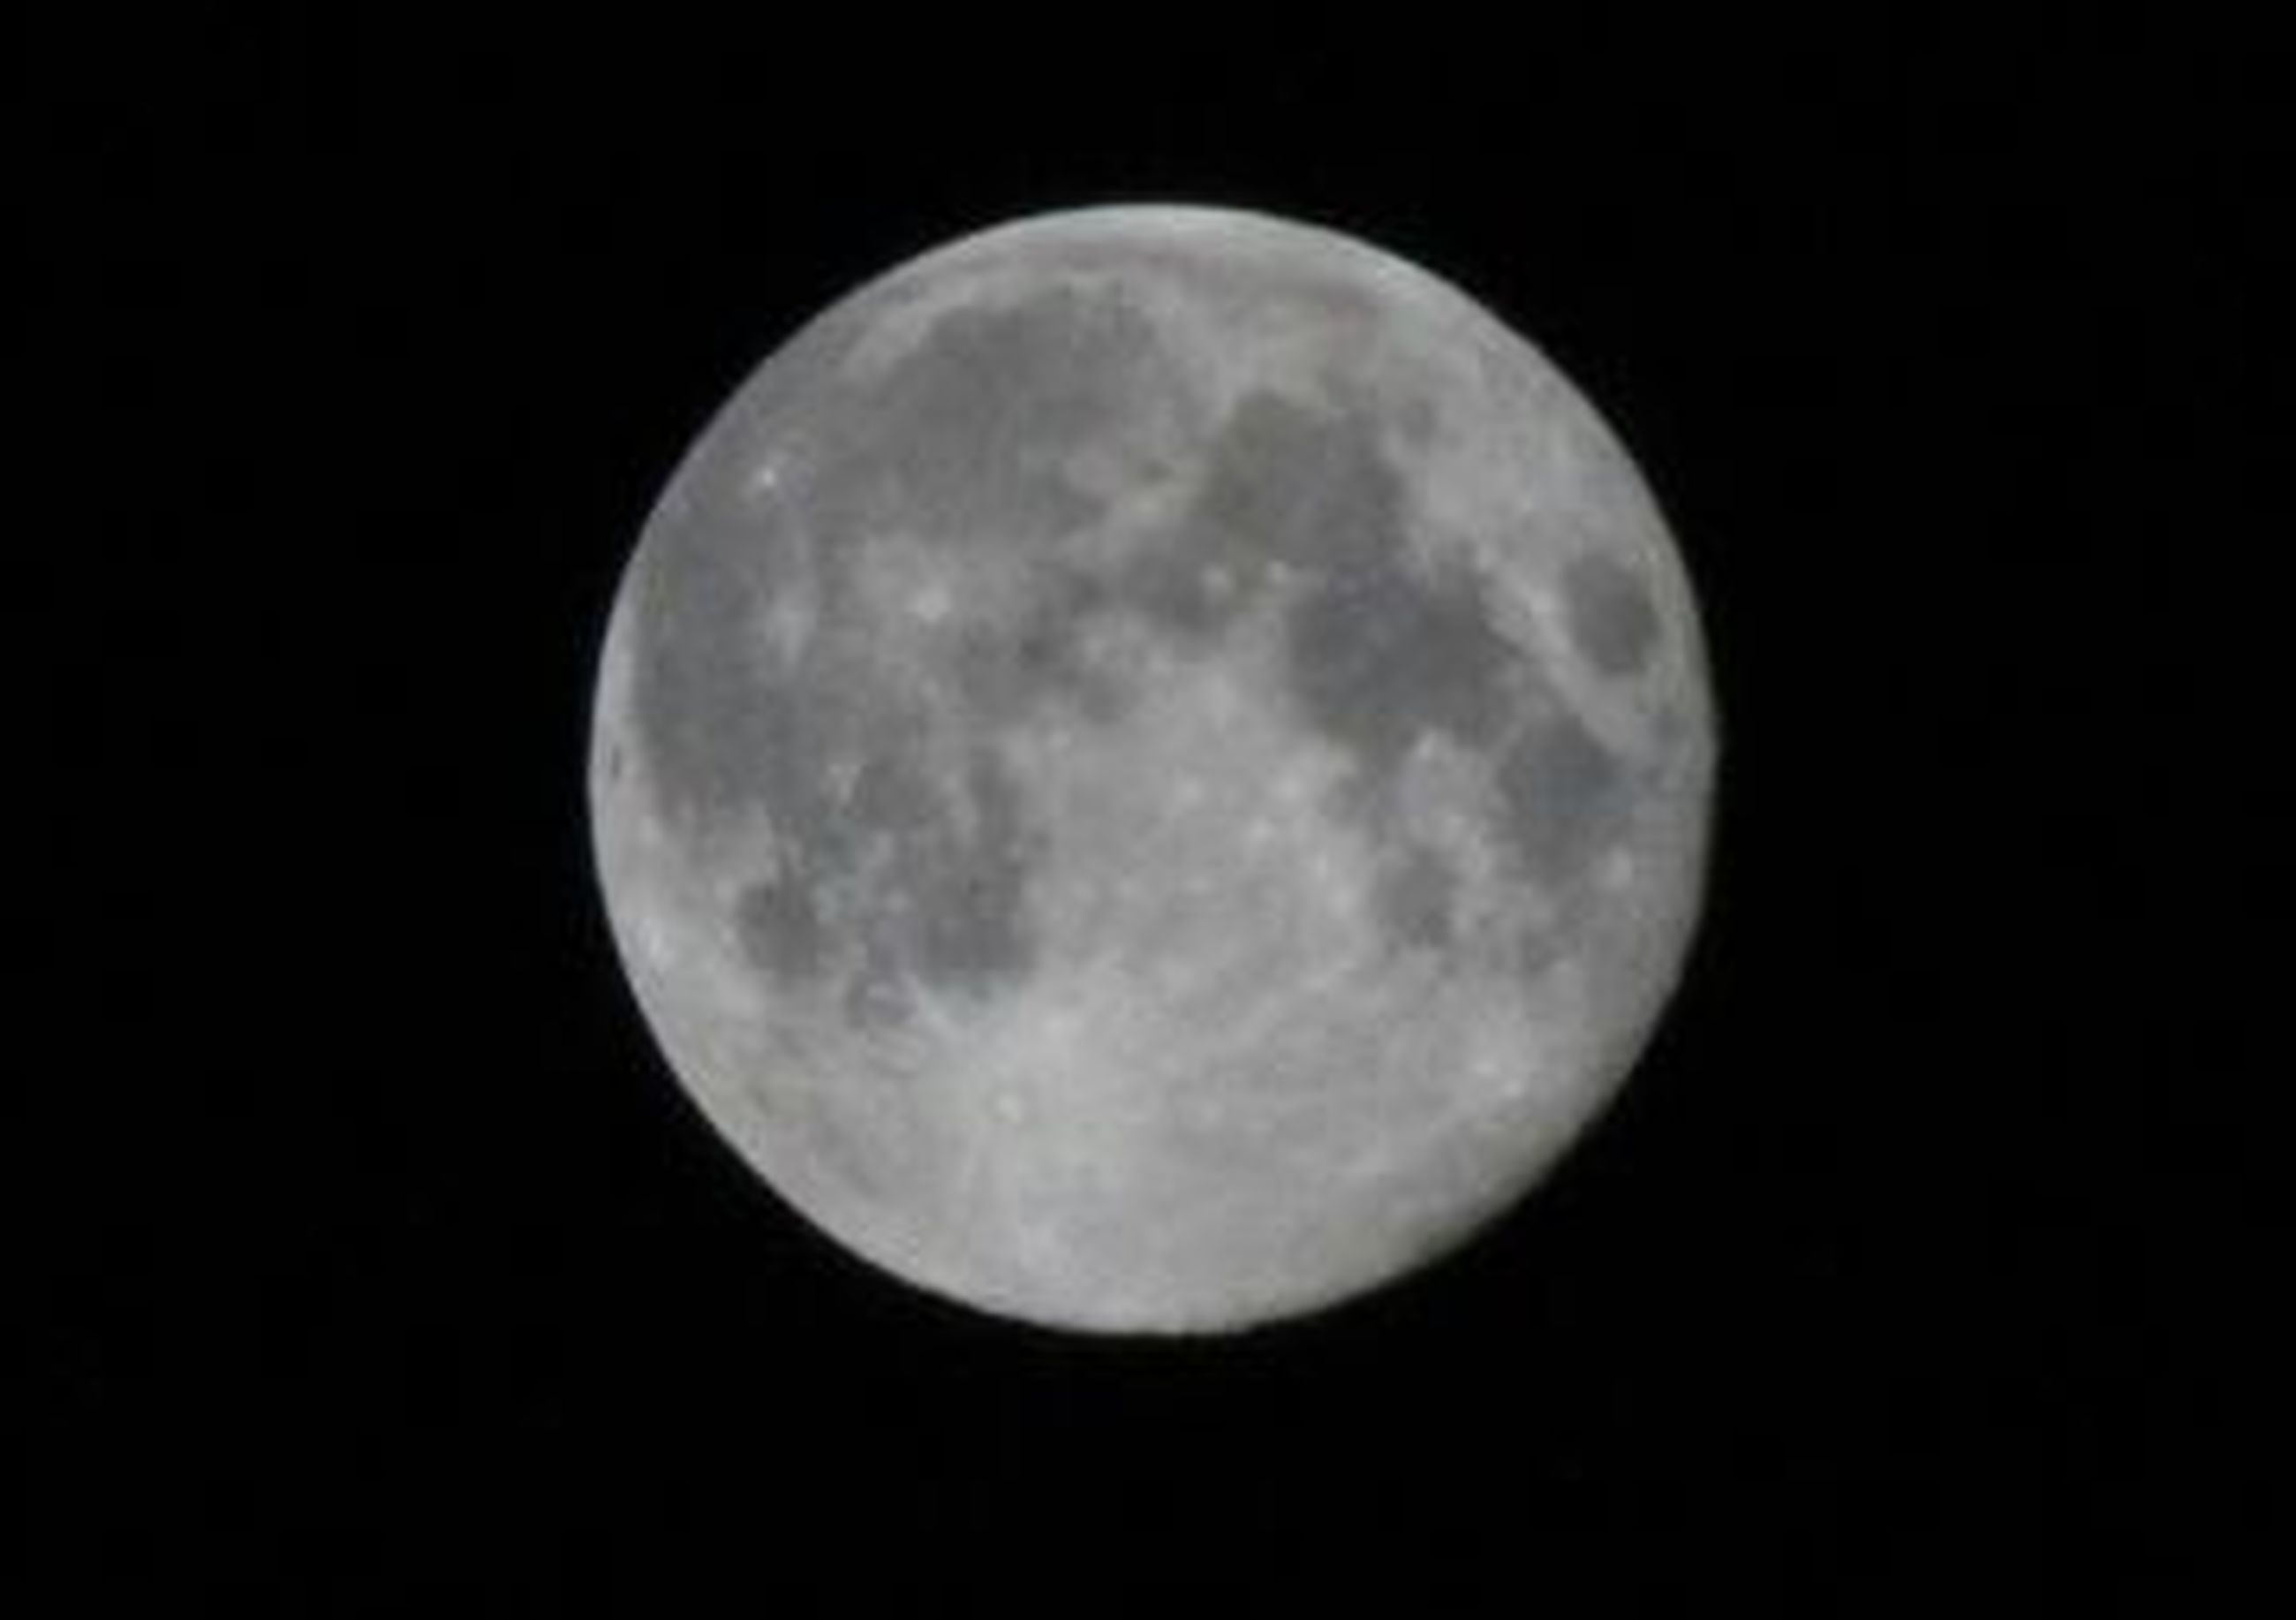 moon, astronomy, planetary moon, full moon, night, moon surface, discovery, beauty in nature, space exploration, tranquil scene, circle, scenics, tranquility, sphere, nature, low angle view, majestic, sky, dark, exploration